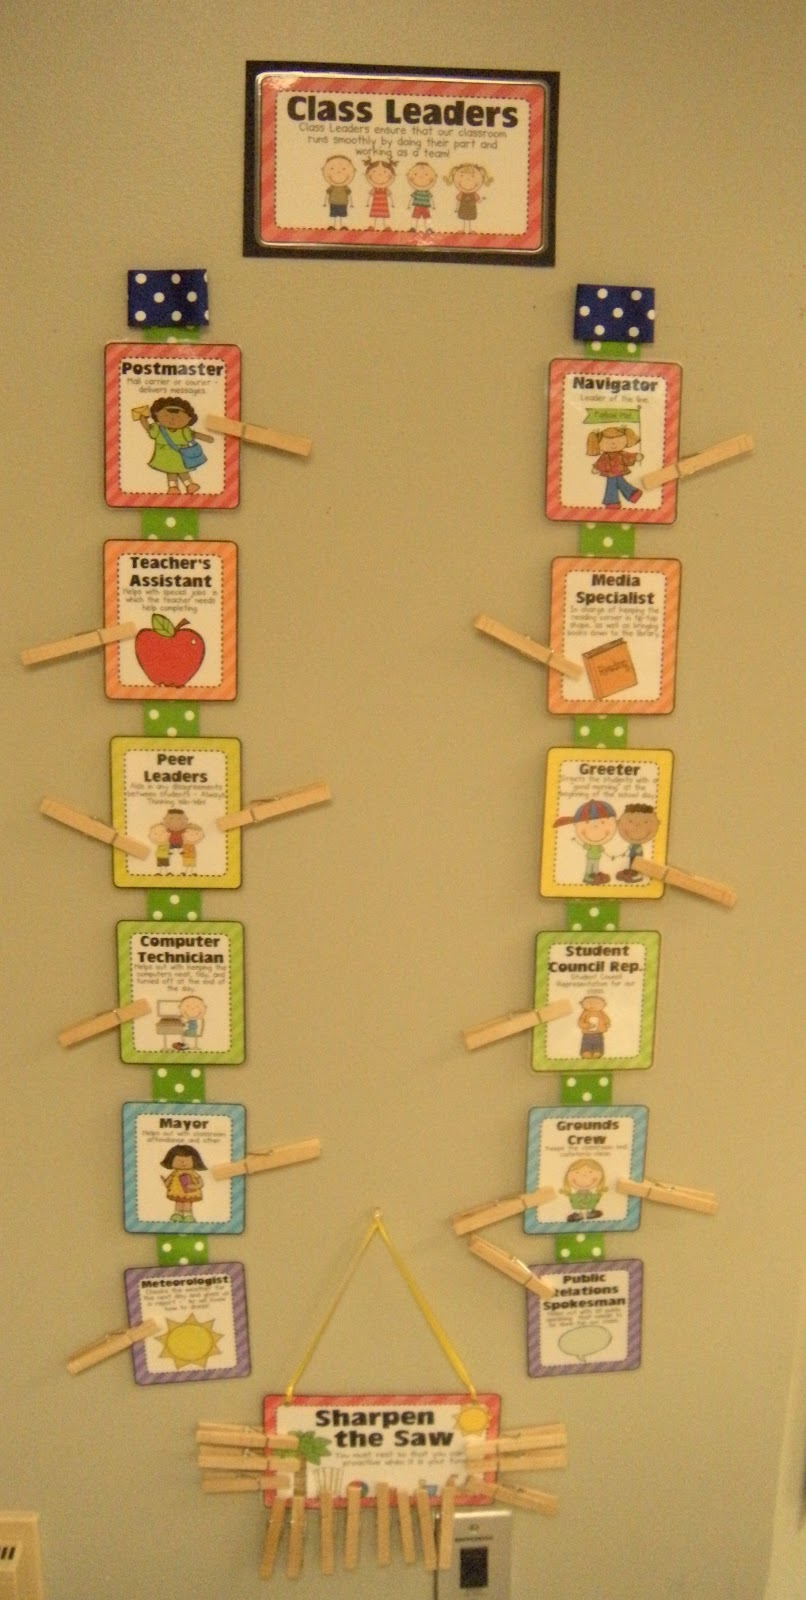 little lovely leaders classroom complete these jobs target leadership classrooms i am super excited about them i tried to use real jobs as the job titles for example rather than line leader